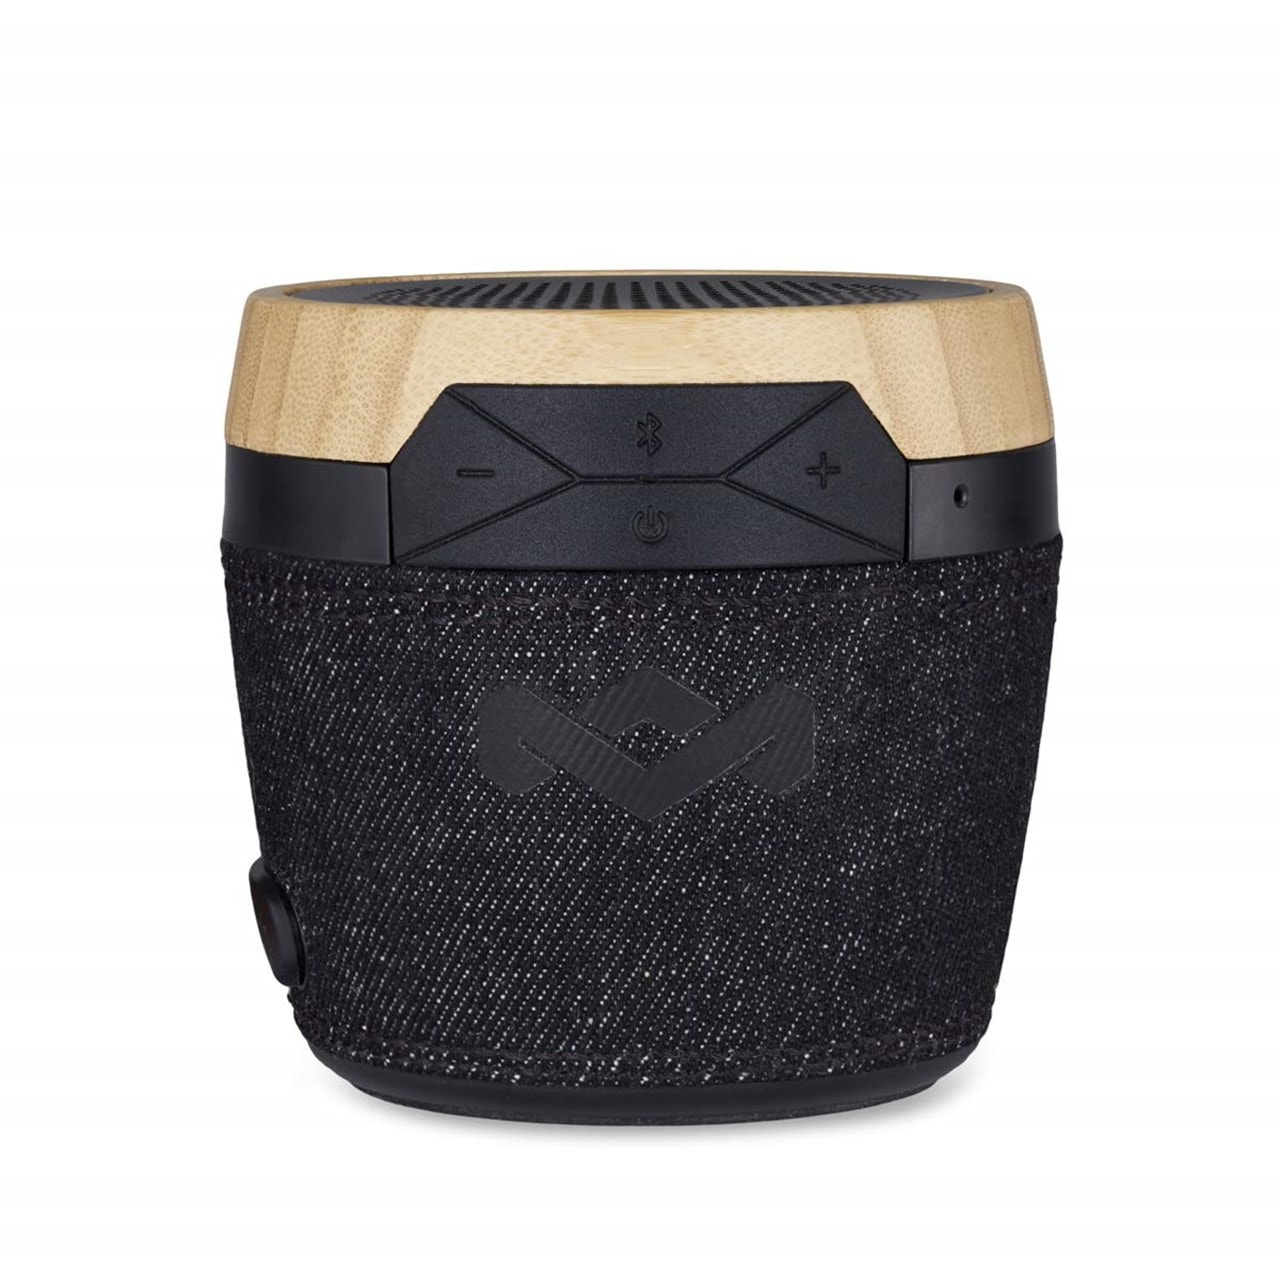 House Of Marley Chant Mini Signature Black Bluetooth Speaker - 1